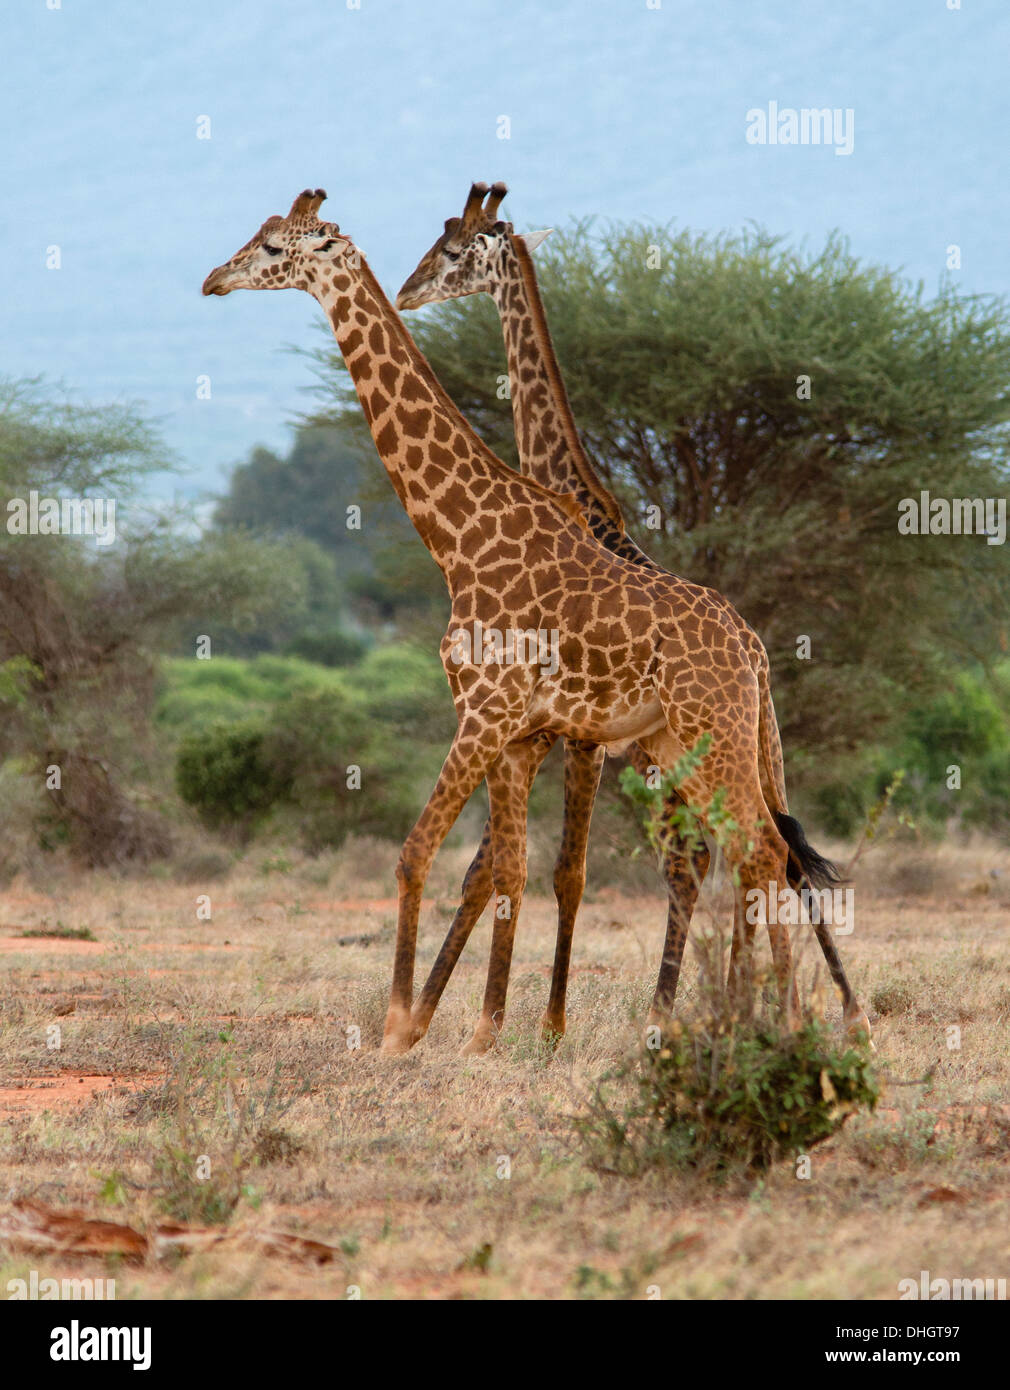 Male Masai giraffes sparring in a mock fight Tsavo National Park Southern Kenya - Stock Image